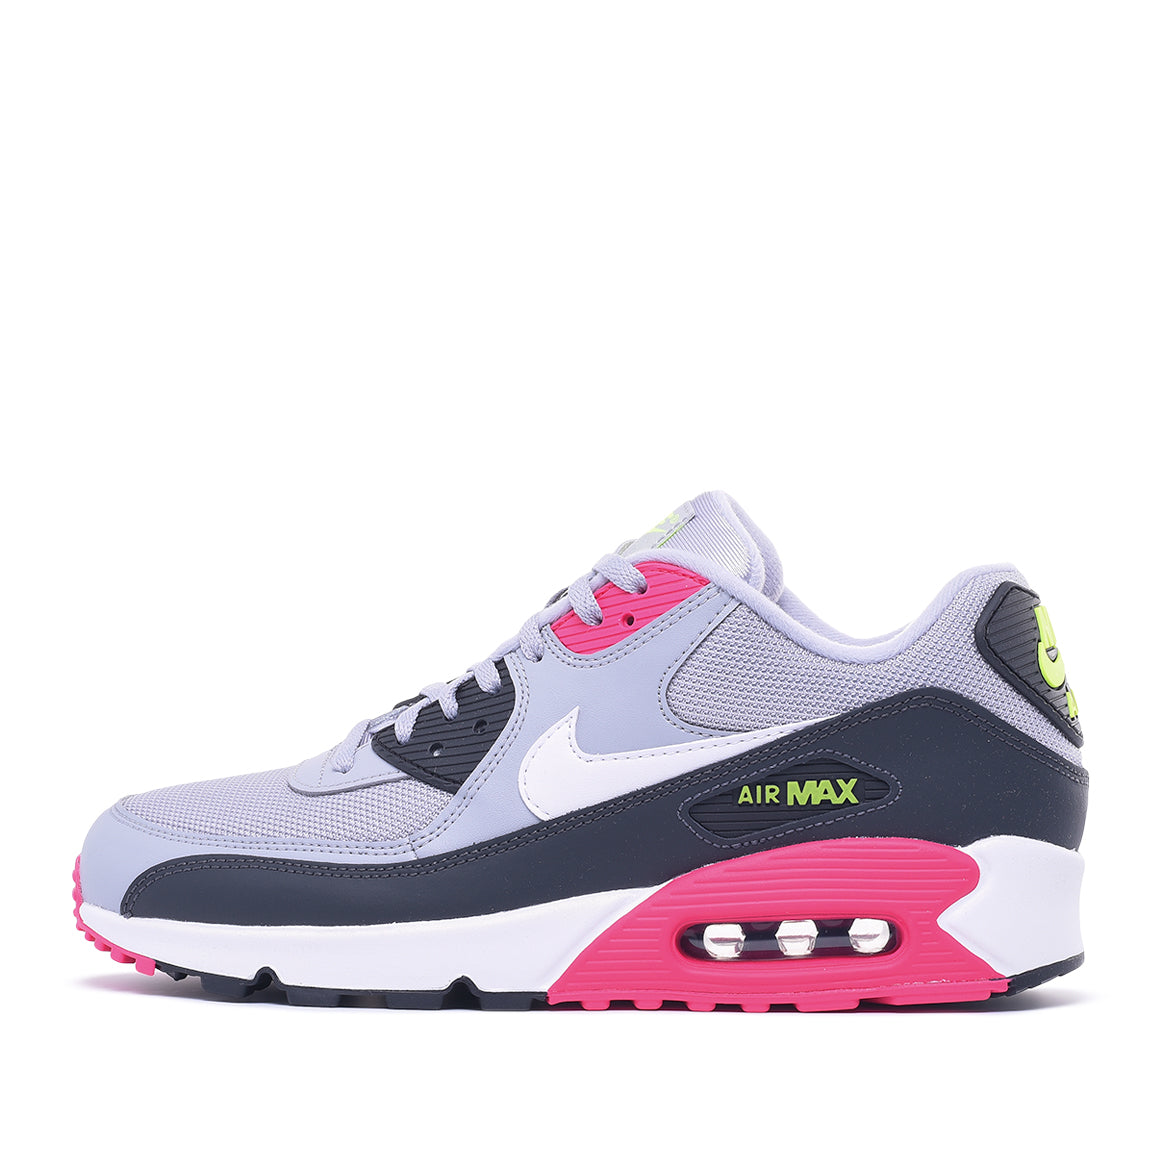 best website 477e7 f3913 AIR MAX 90 ESSENTIAL - WOLF GREY   WHITE   RUSH PINK   City Blue